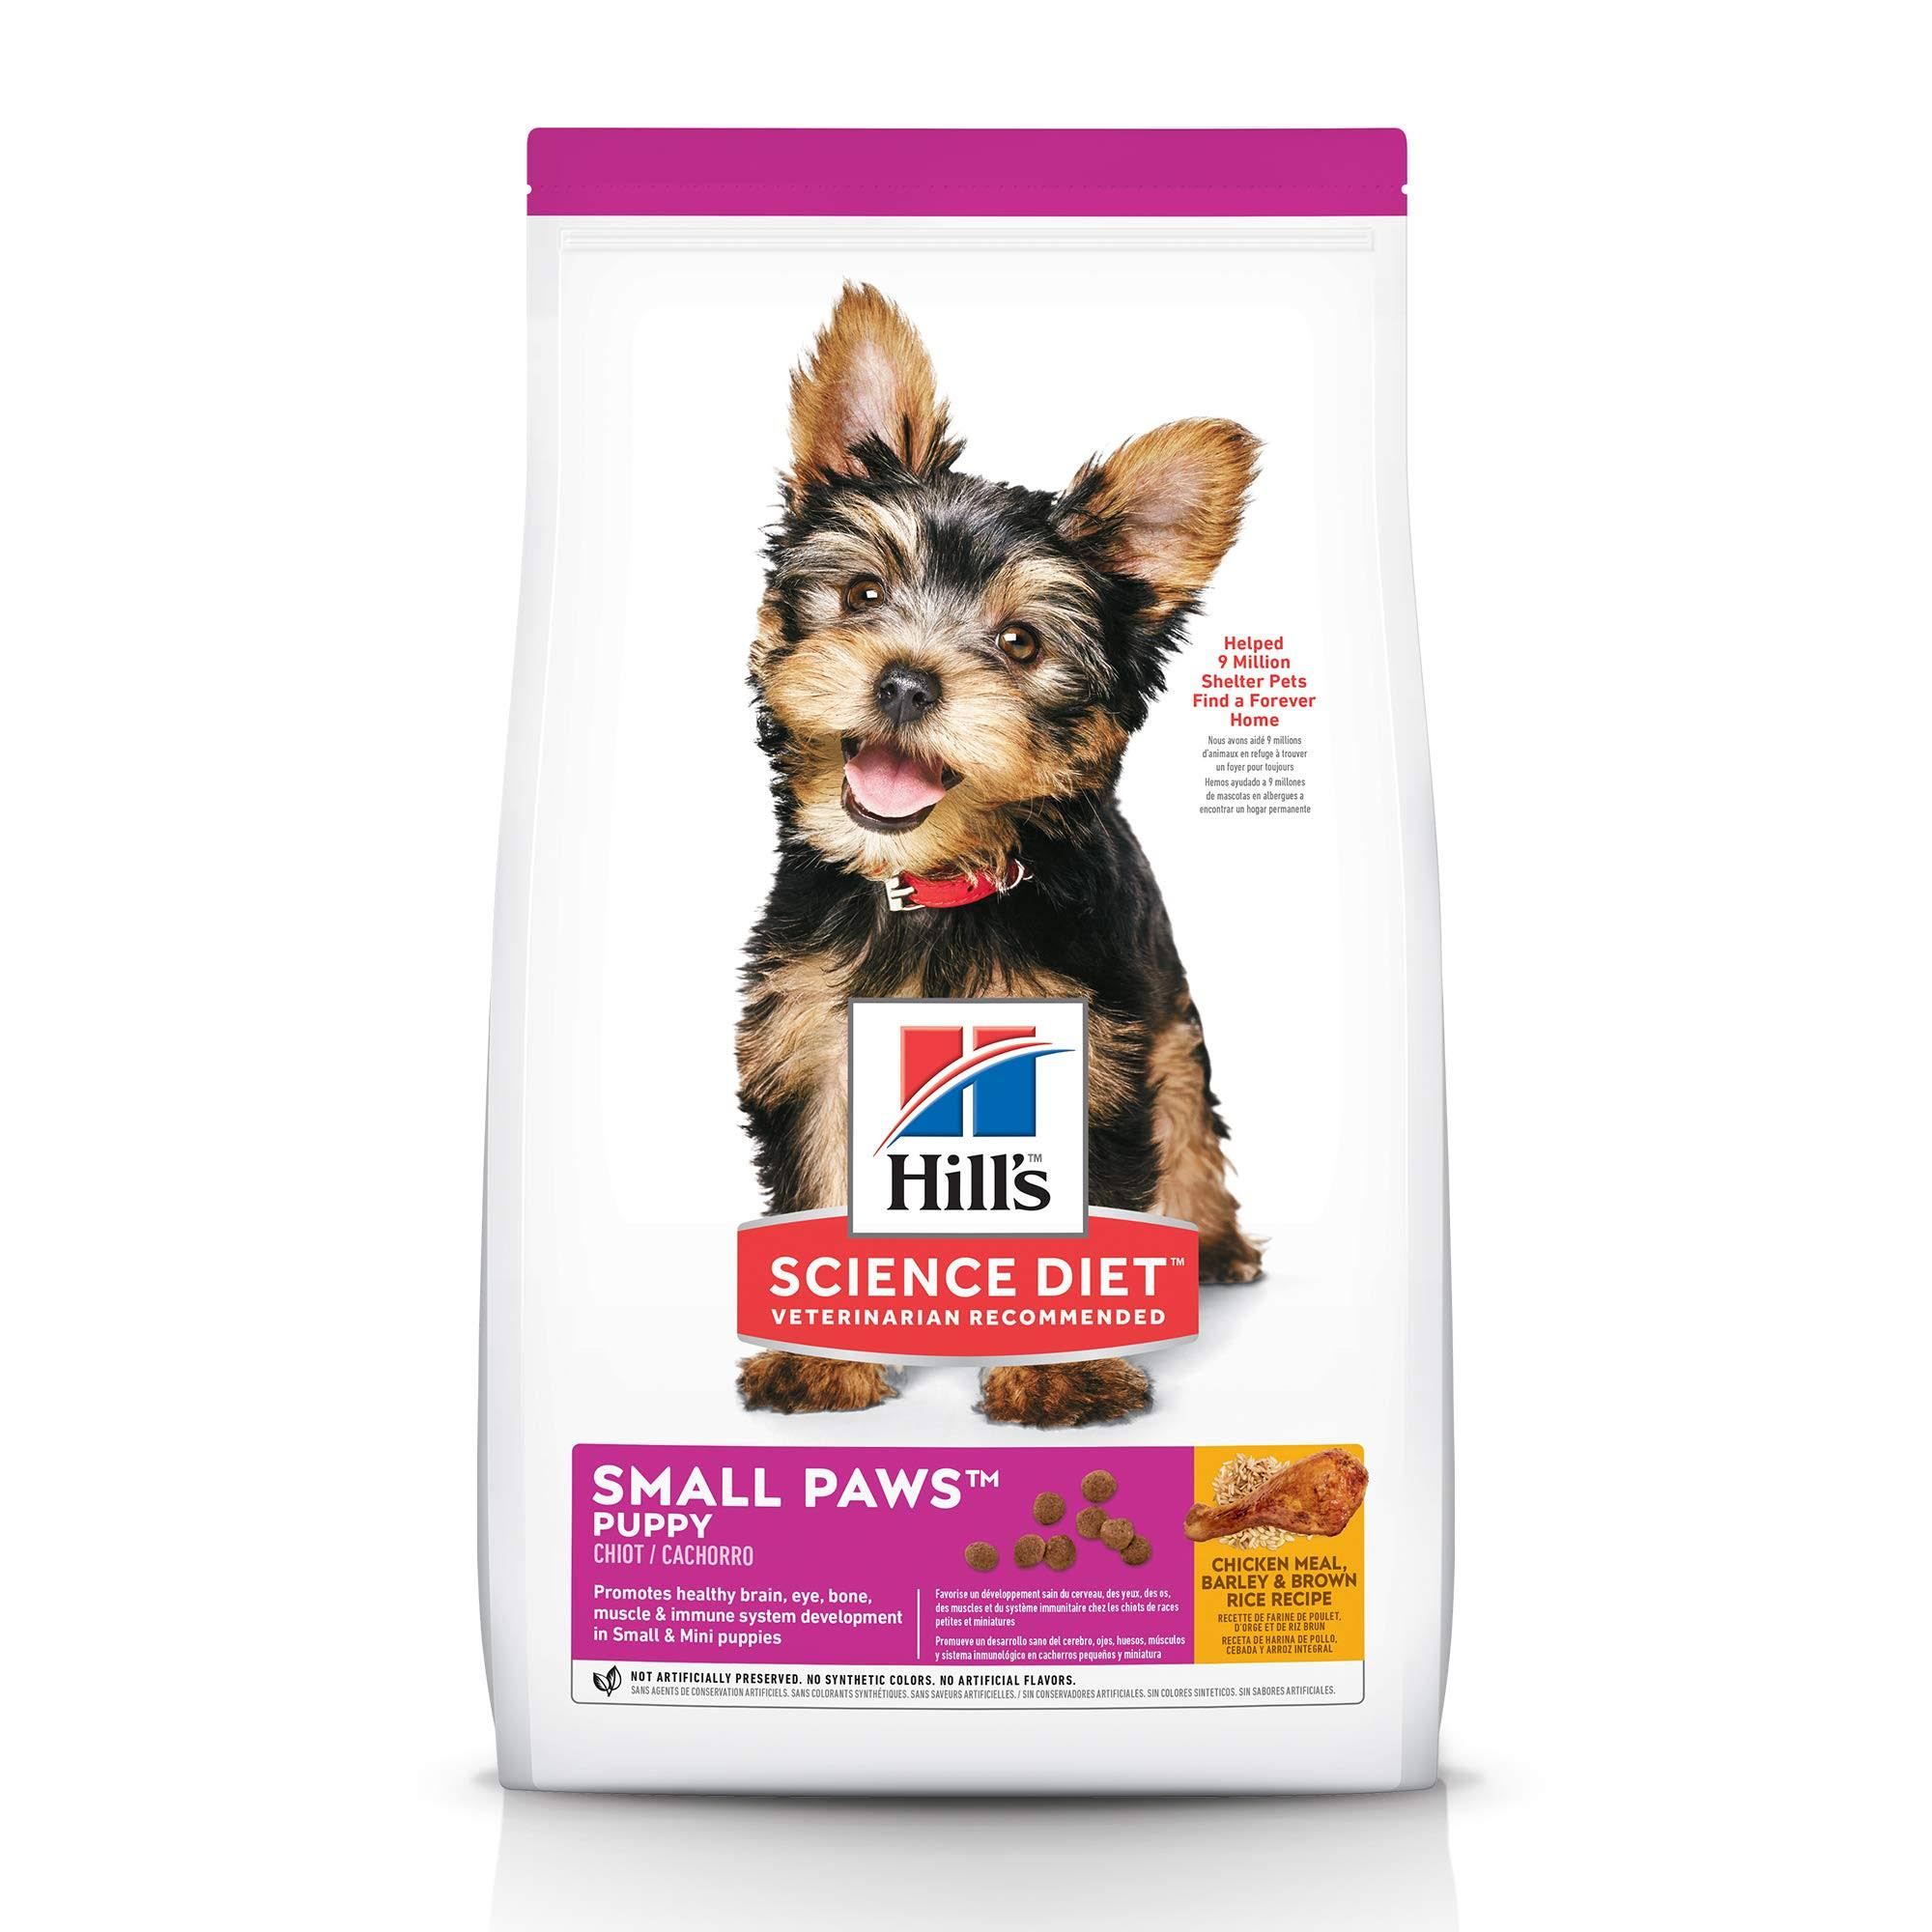 Hill's Science Diet Premium Natural Dog Food - Small & Toy Breed, Chicken Meal & Barley, 15.5lbs